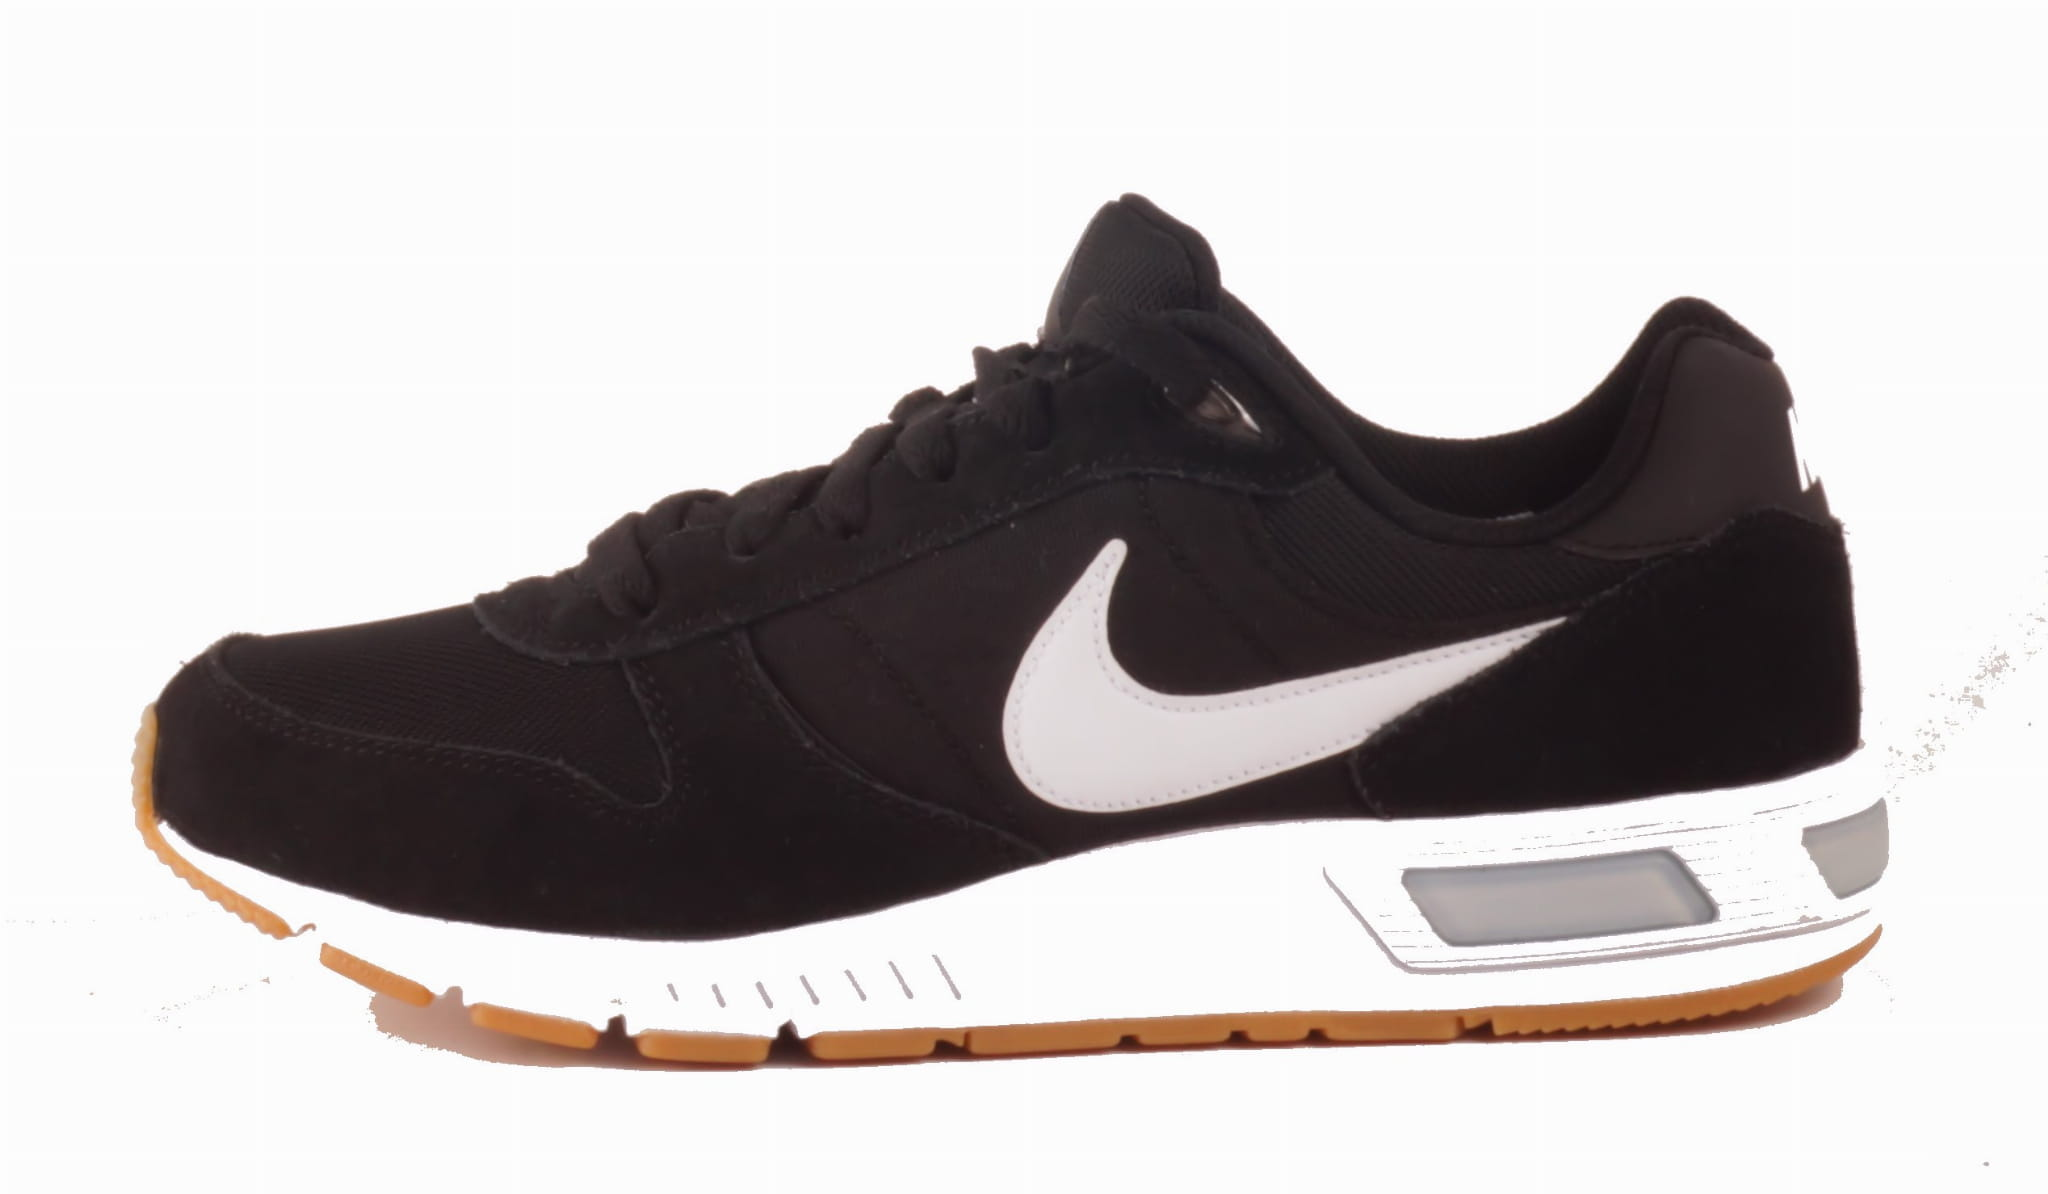 86766b92a NIKE OBUWIE m. 644402 006 NIGHTGAZER - VabiMax Outlet